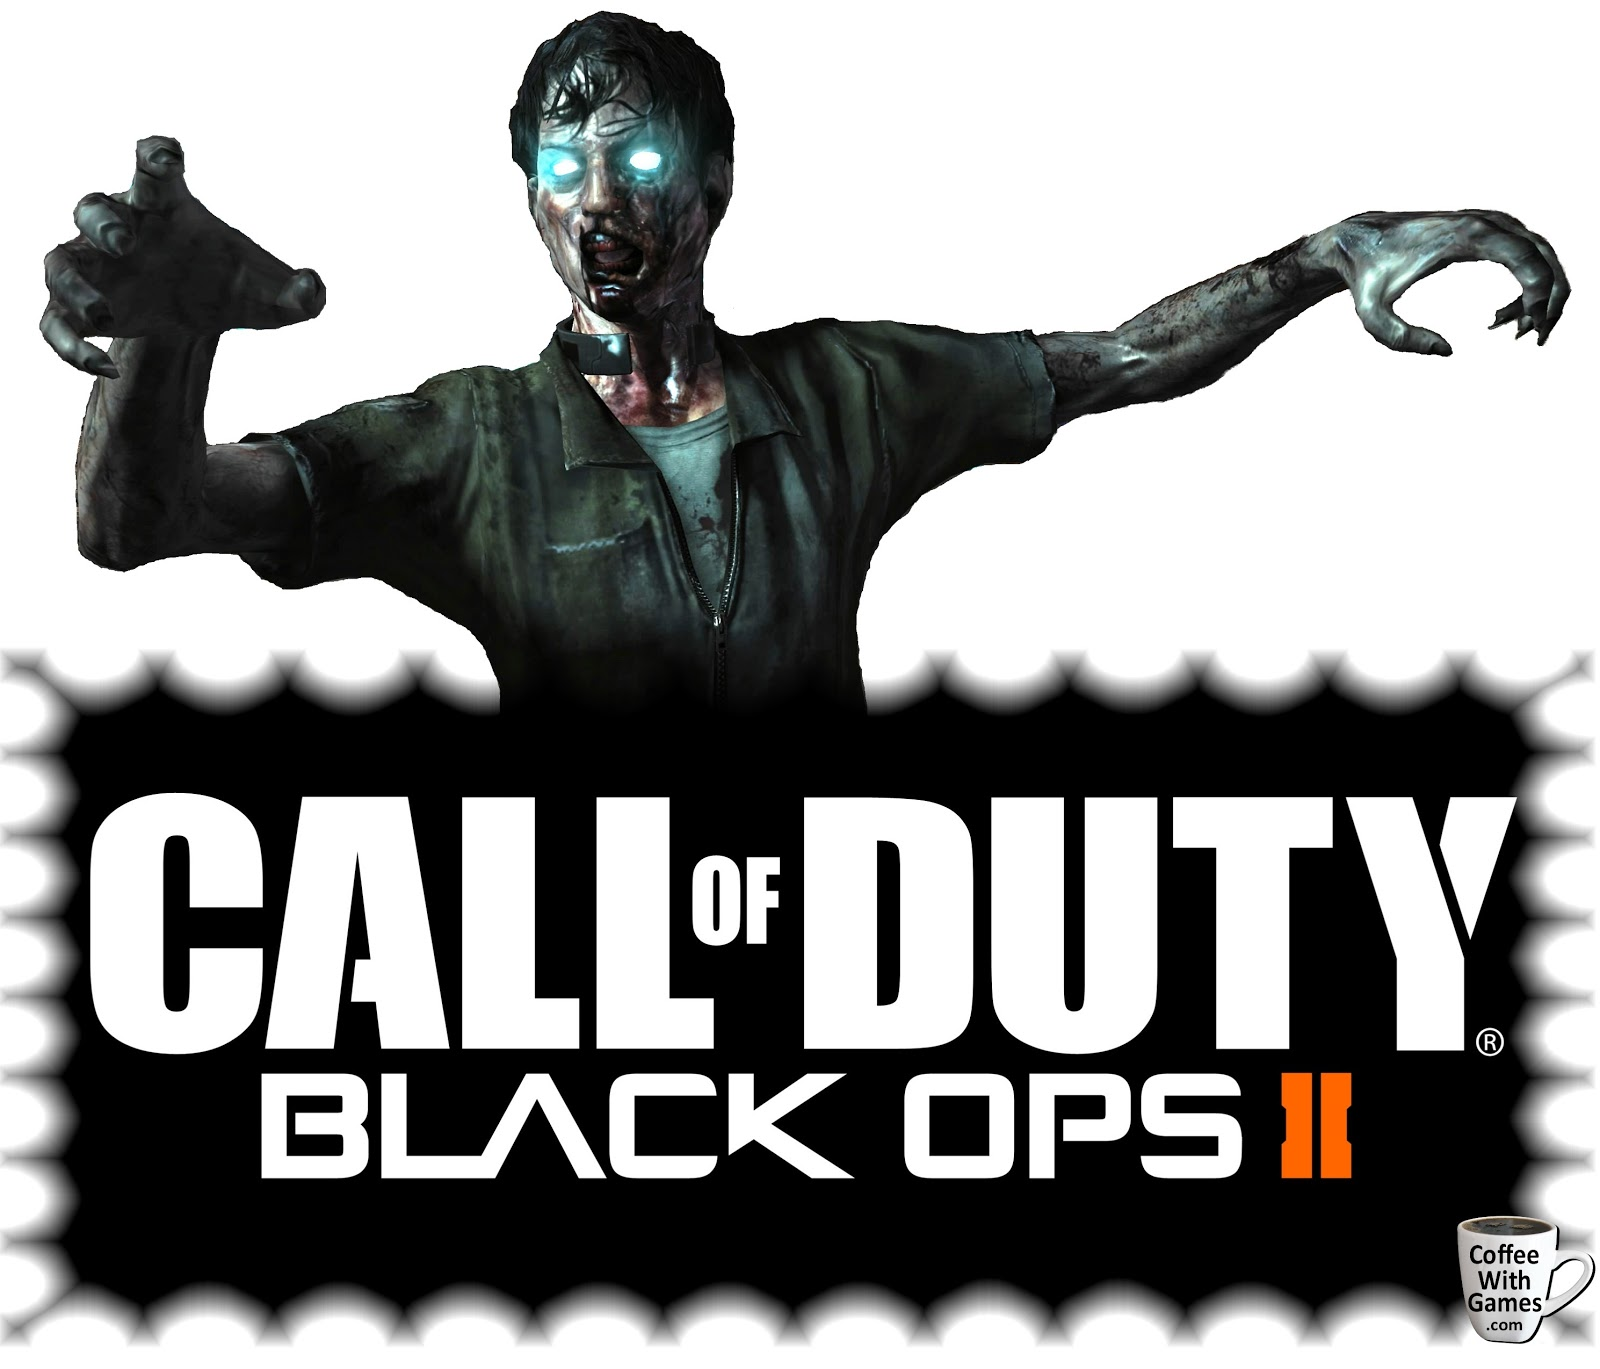 black ops 2 zombie wii u call of duty banner